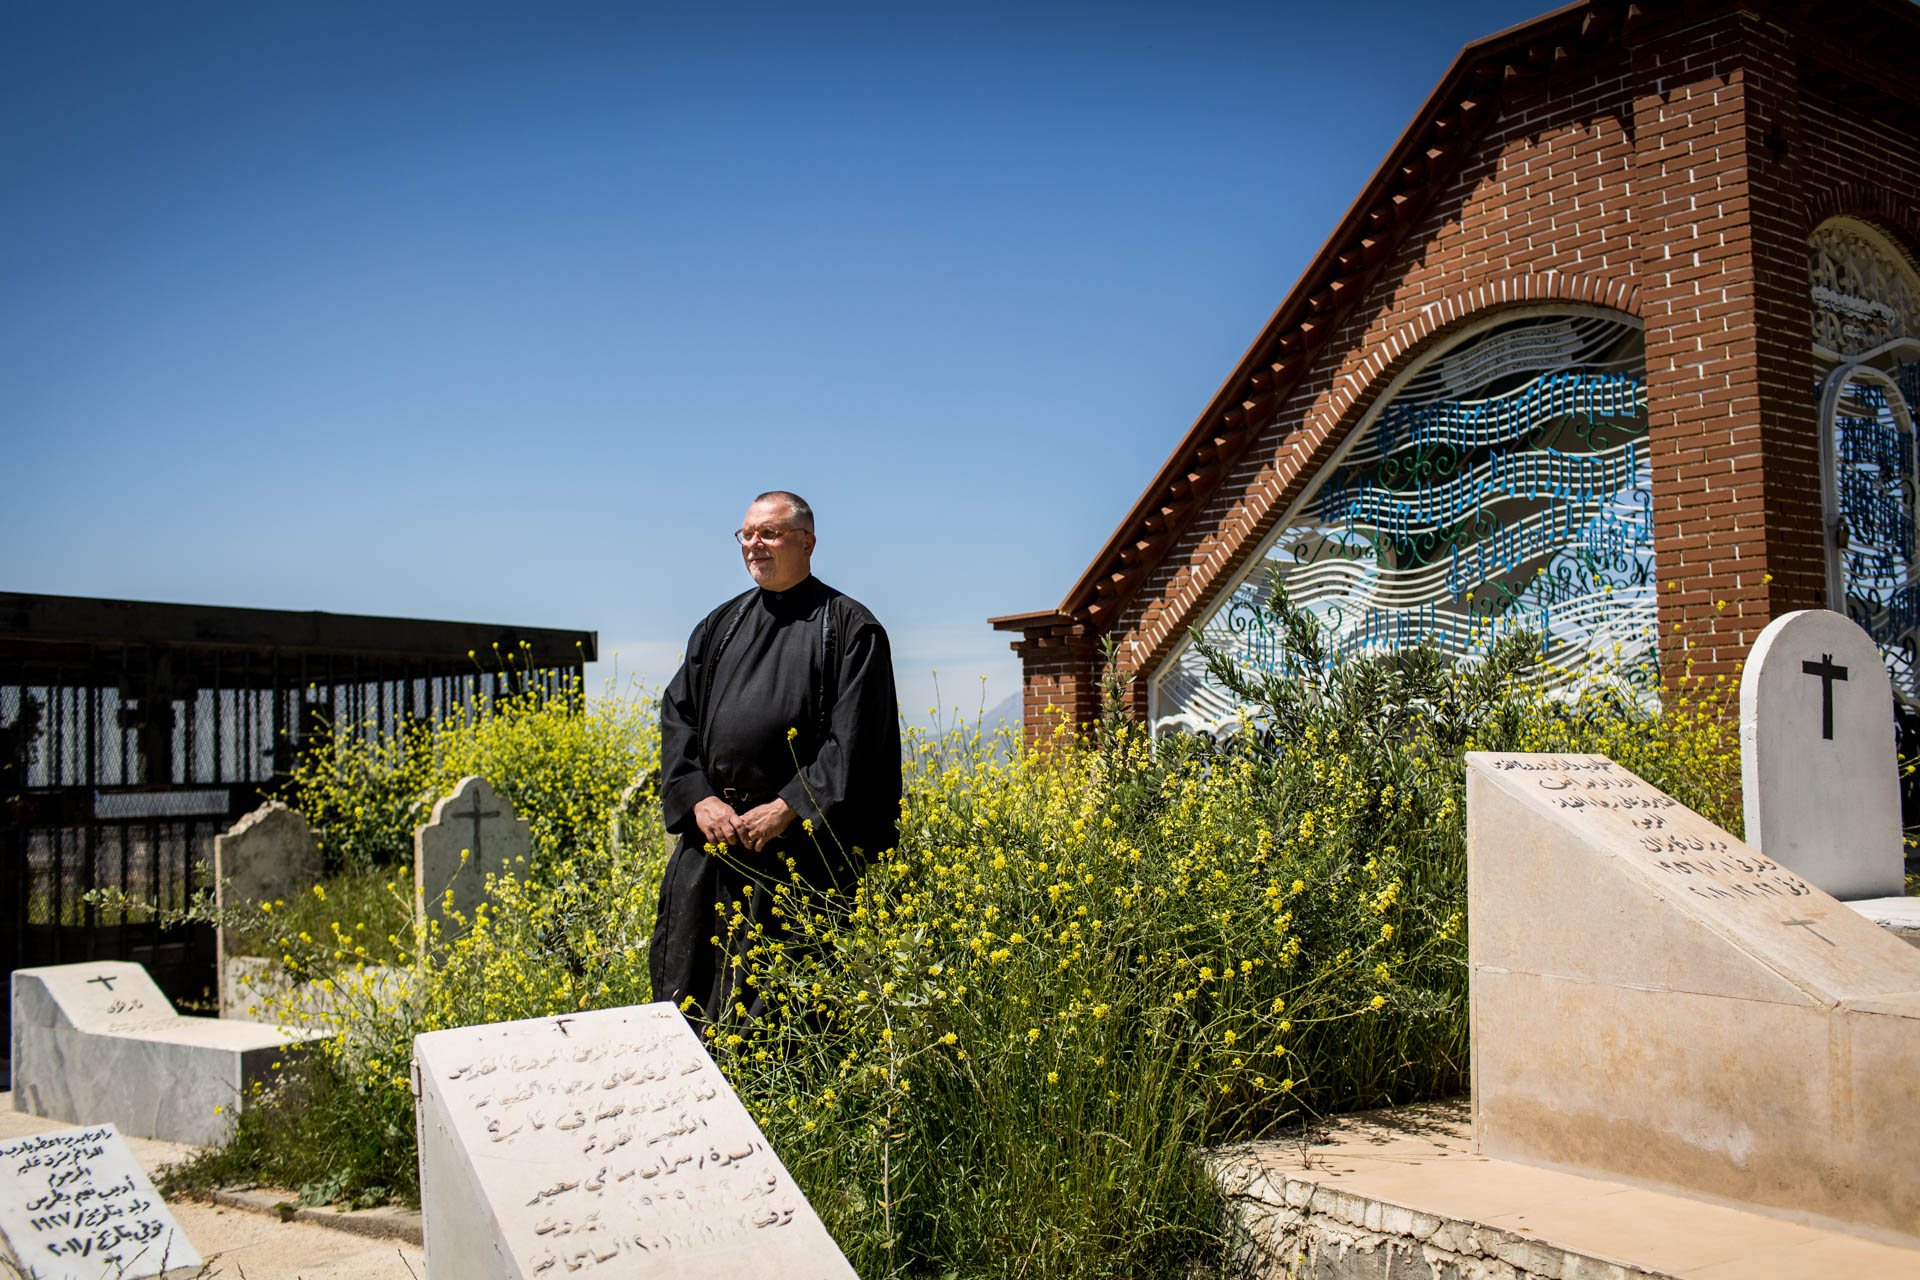 Father Jens stands in the only Christian cemetery of Sulaimaniyya. The city with two million inhabitants has a tiny Christian community, only two other churches exist.